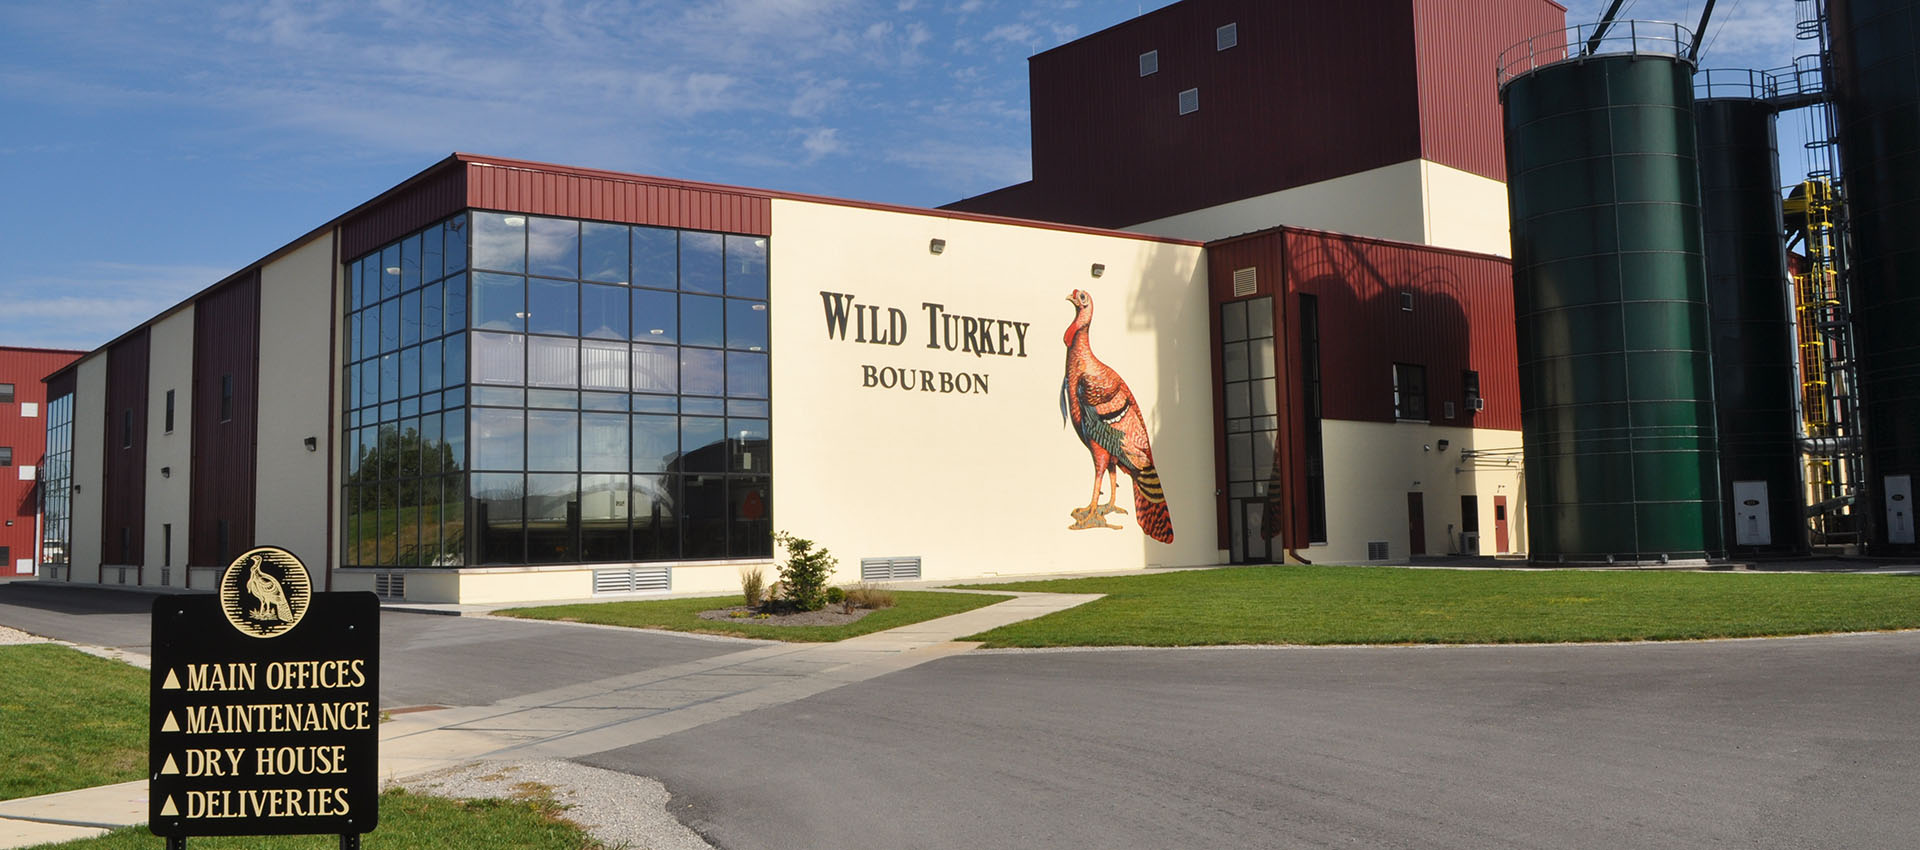 WildTurkey-banner